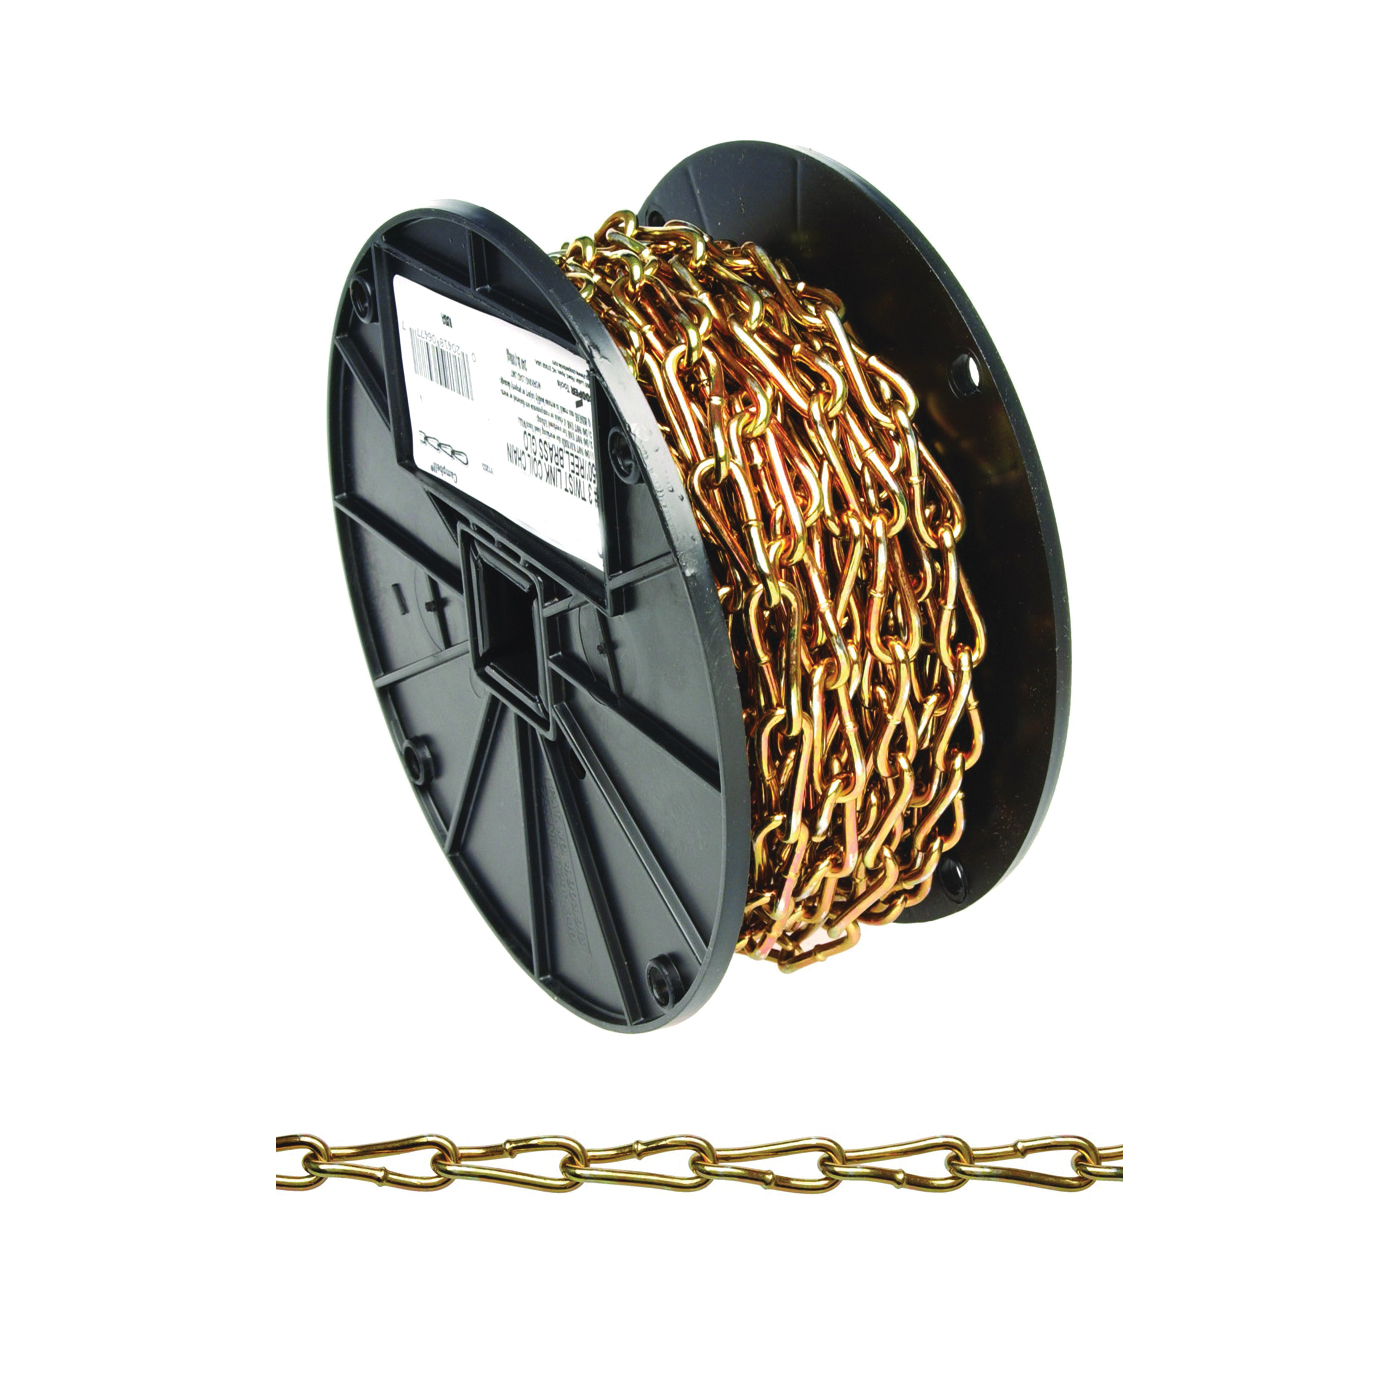 Picture of Campbell 0723167 Twist Link Coil Chain, #3 Trade, 50 ft L, 240 lb Working Load, Steel, Brass